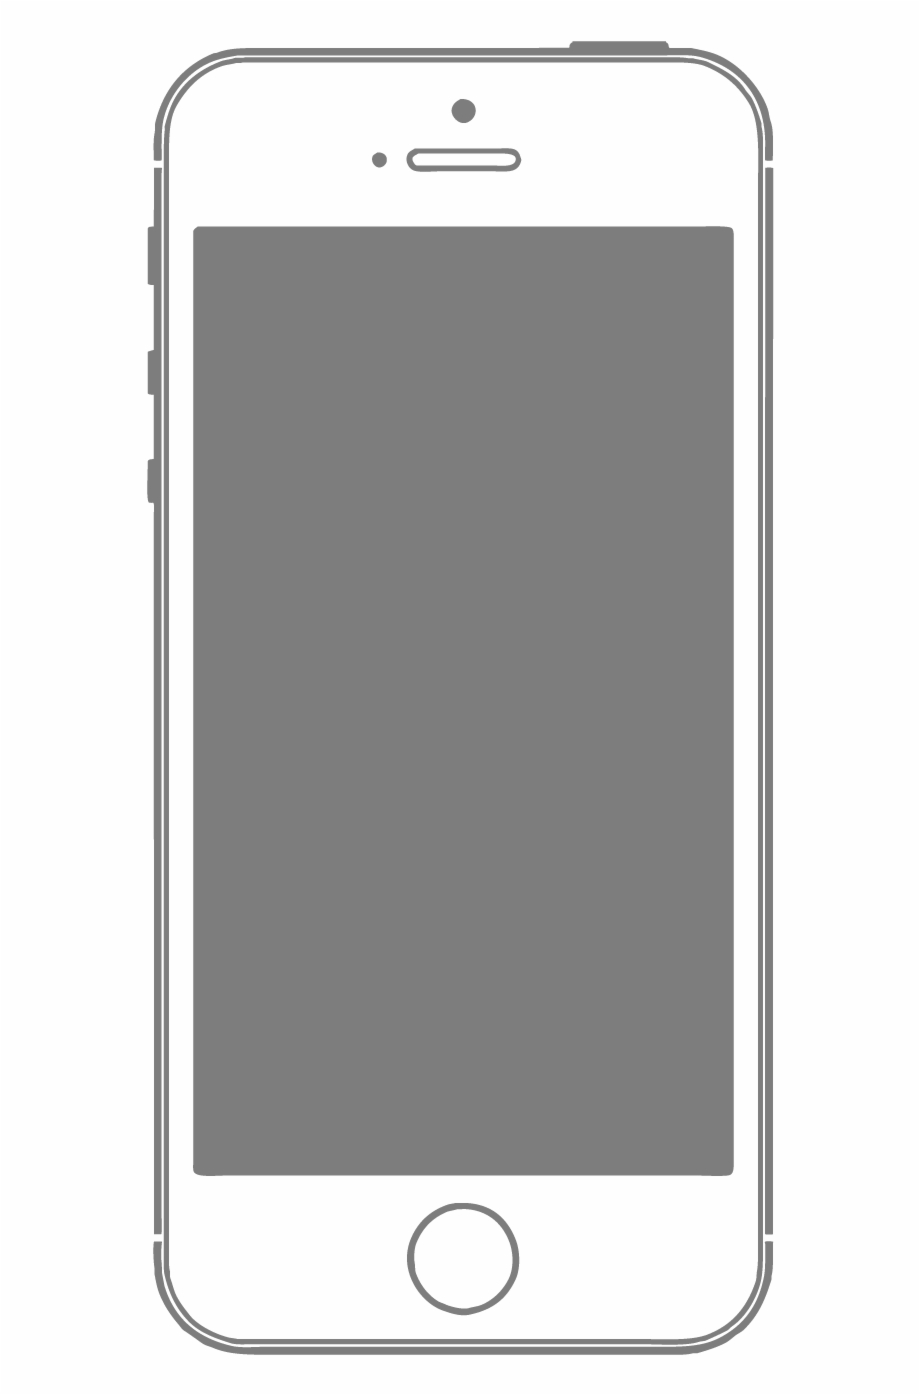 Phone Frame Png Vector Graphics.